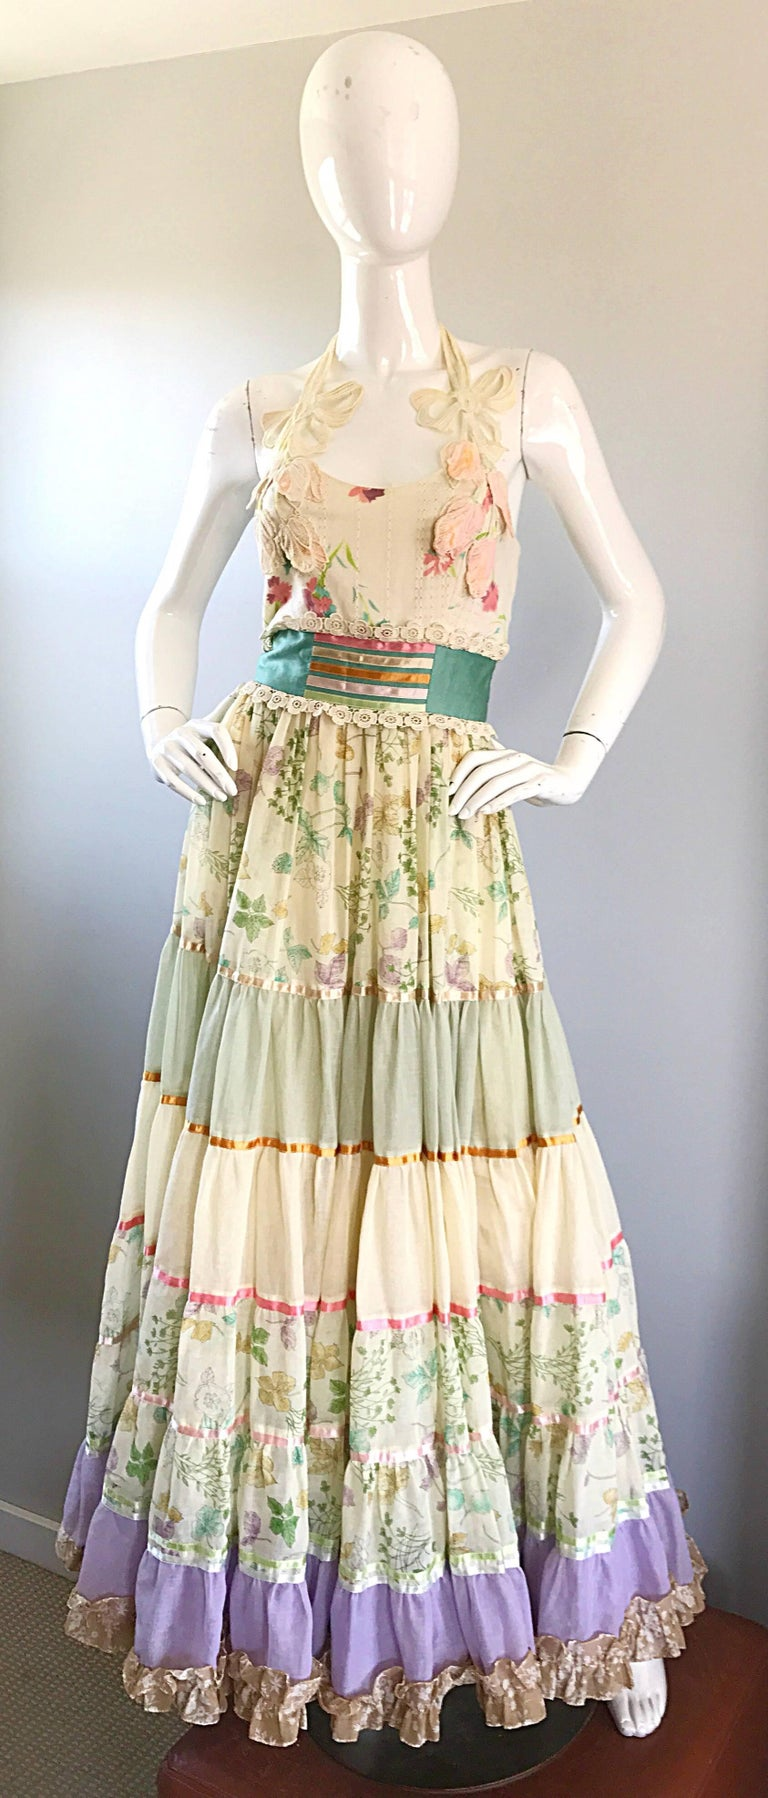 Gorgeous and rare early 1970s GIORGIO DI'SANT ANGELO boho halter maxi dress! Features colorful floral prints throughout. Layers and layer of soft cotton voile provide great movement. Fitted bodice with a full skirt. Embroidered flower and ribbon